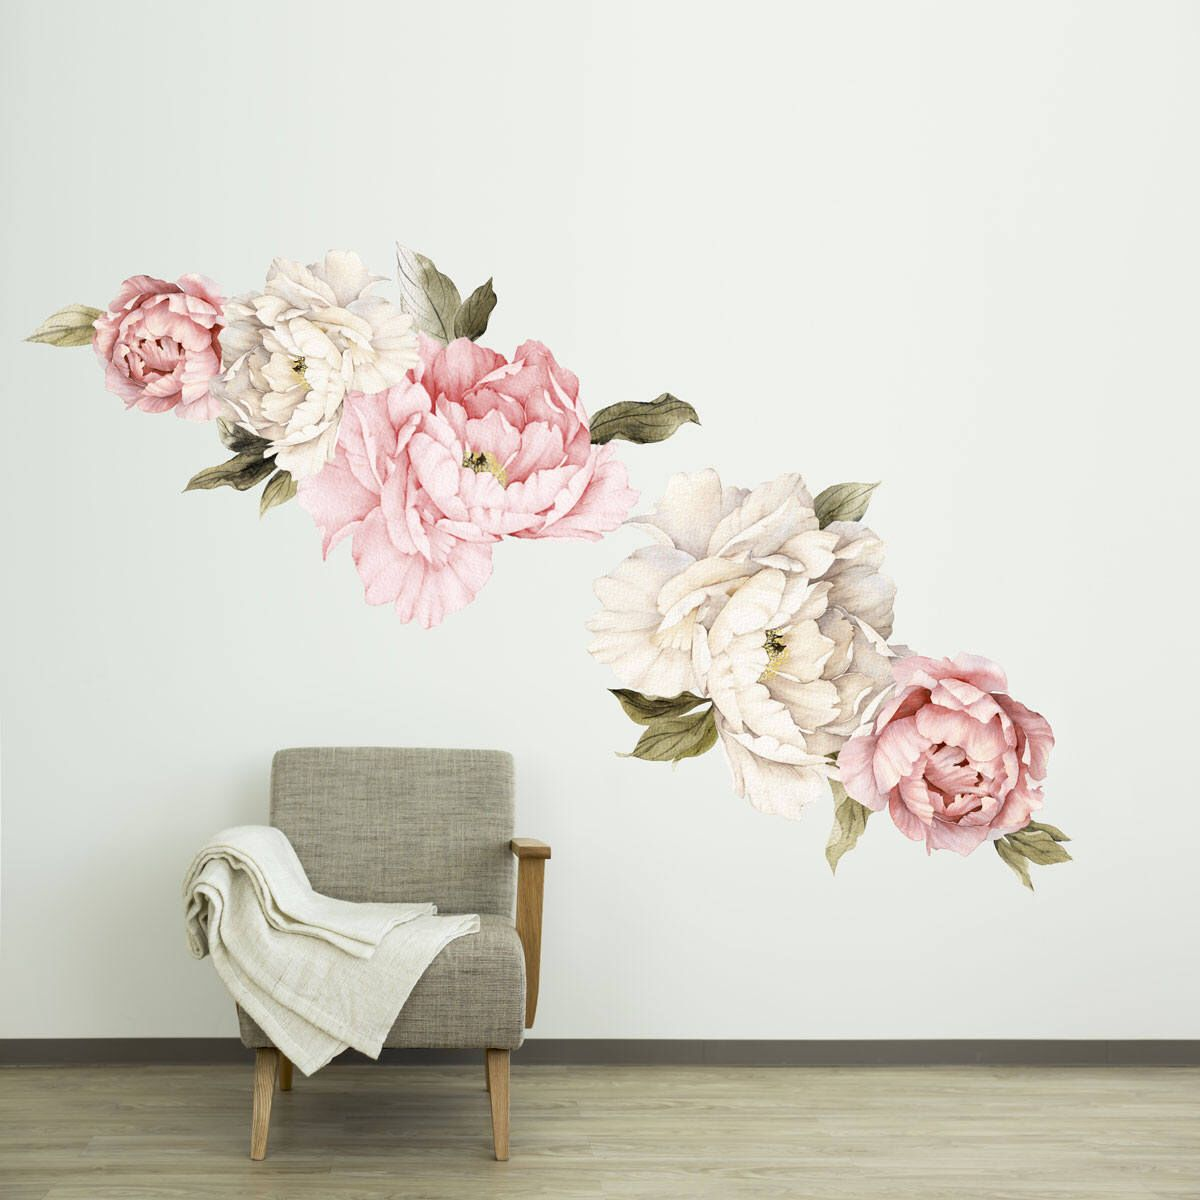 Floral Wallpaper Mural Watercolor Peony Large Self